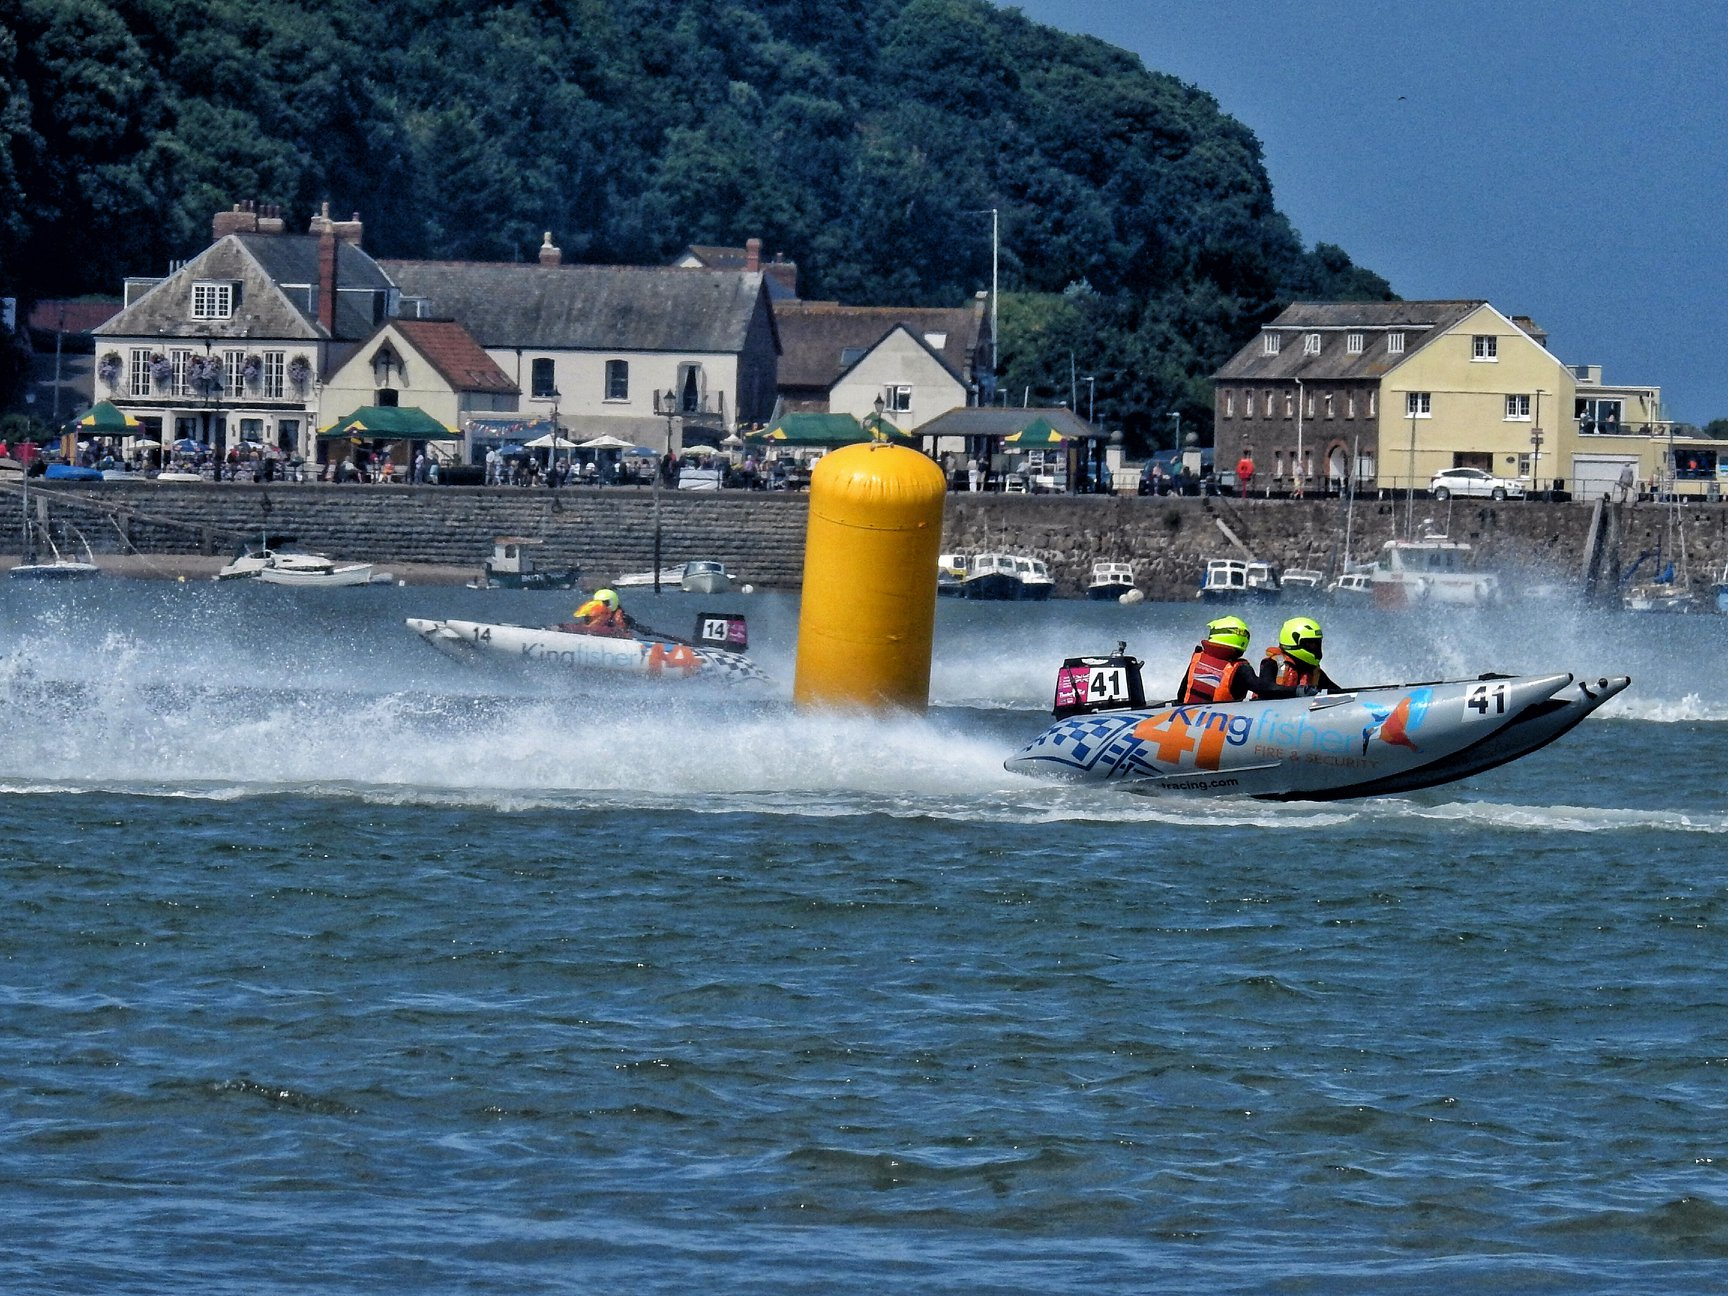 RACING DRAMA: There was some fantastic powerboat racing with the Thundercats (Picture by Paul Davies)